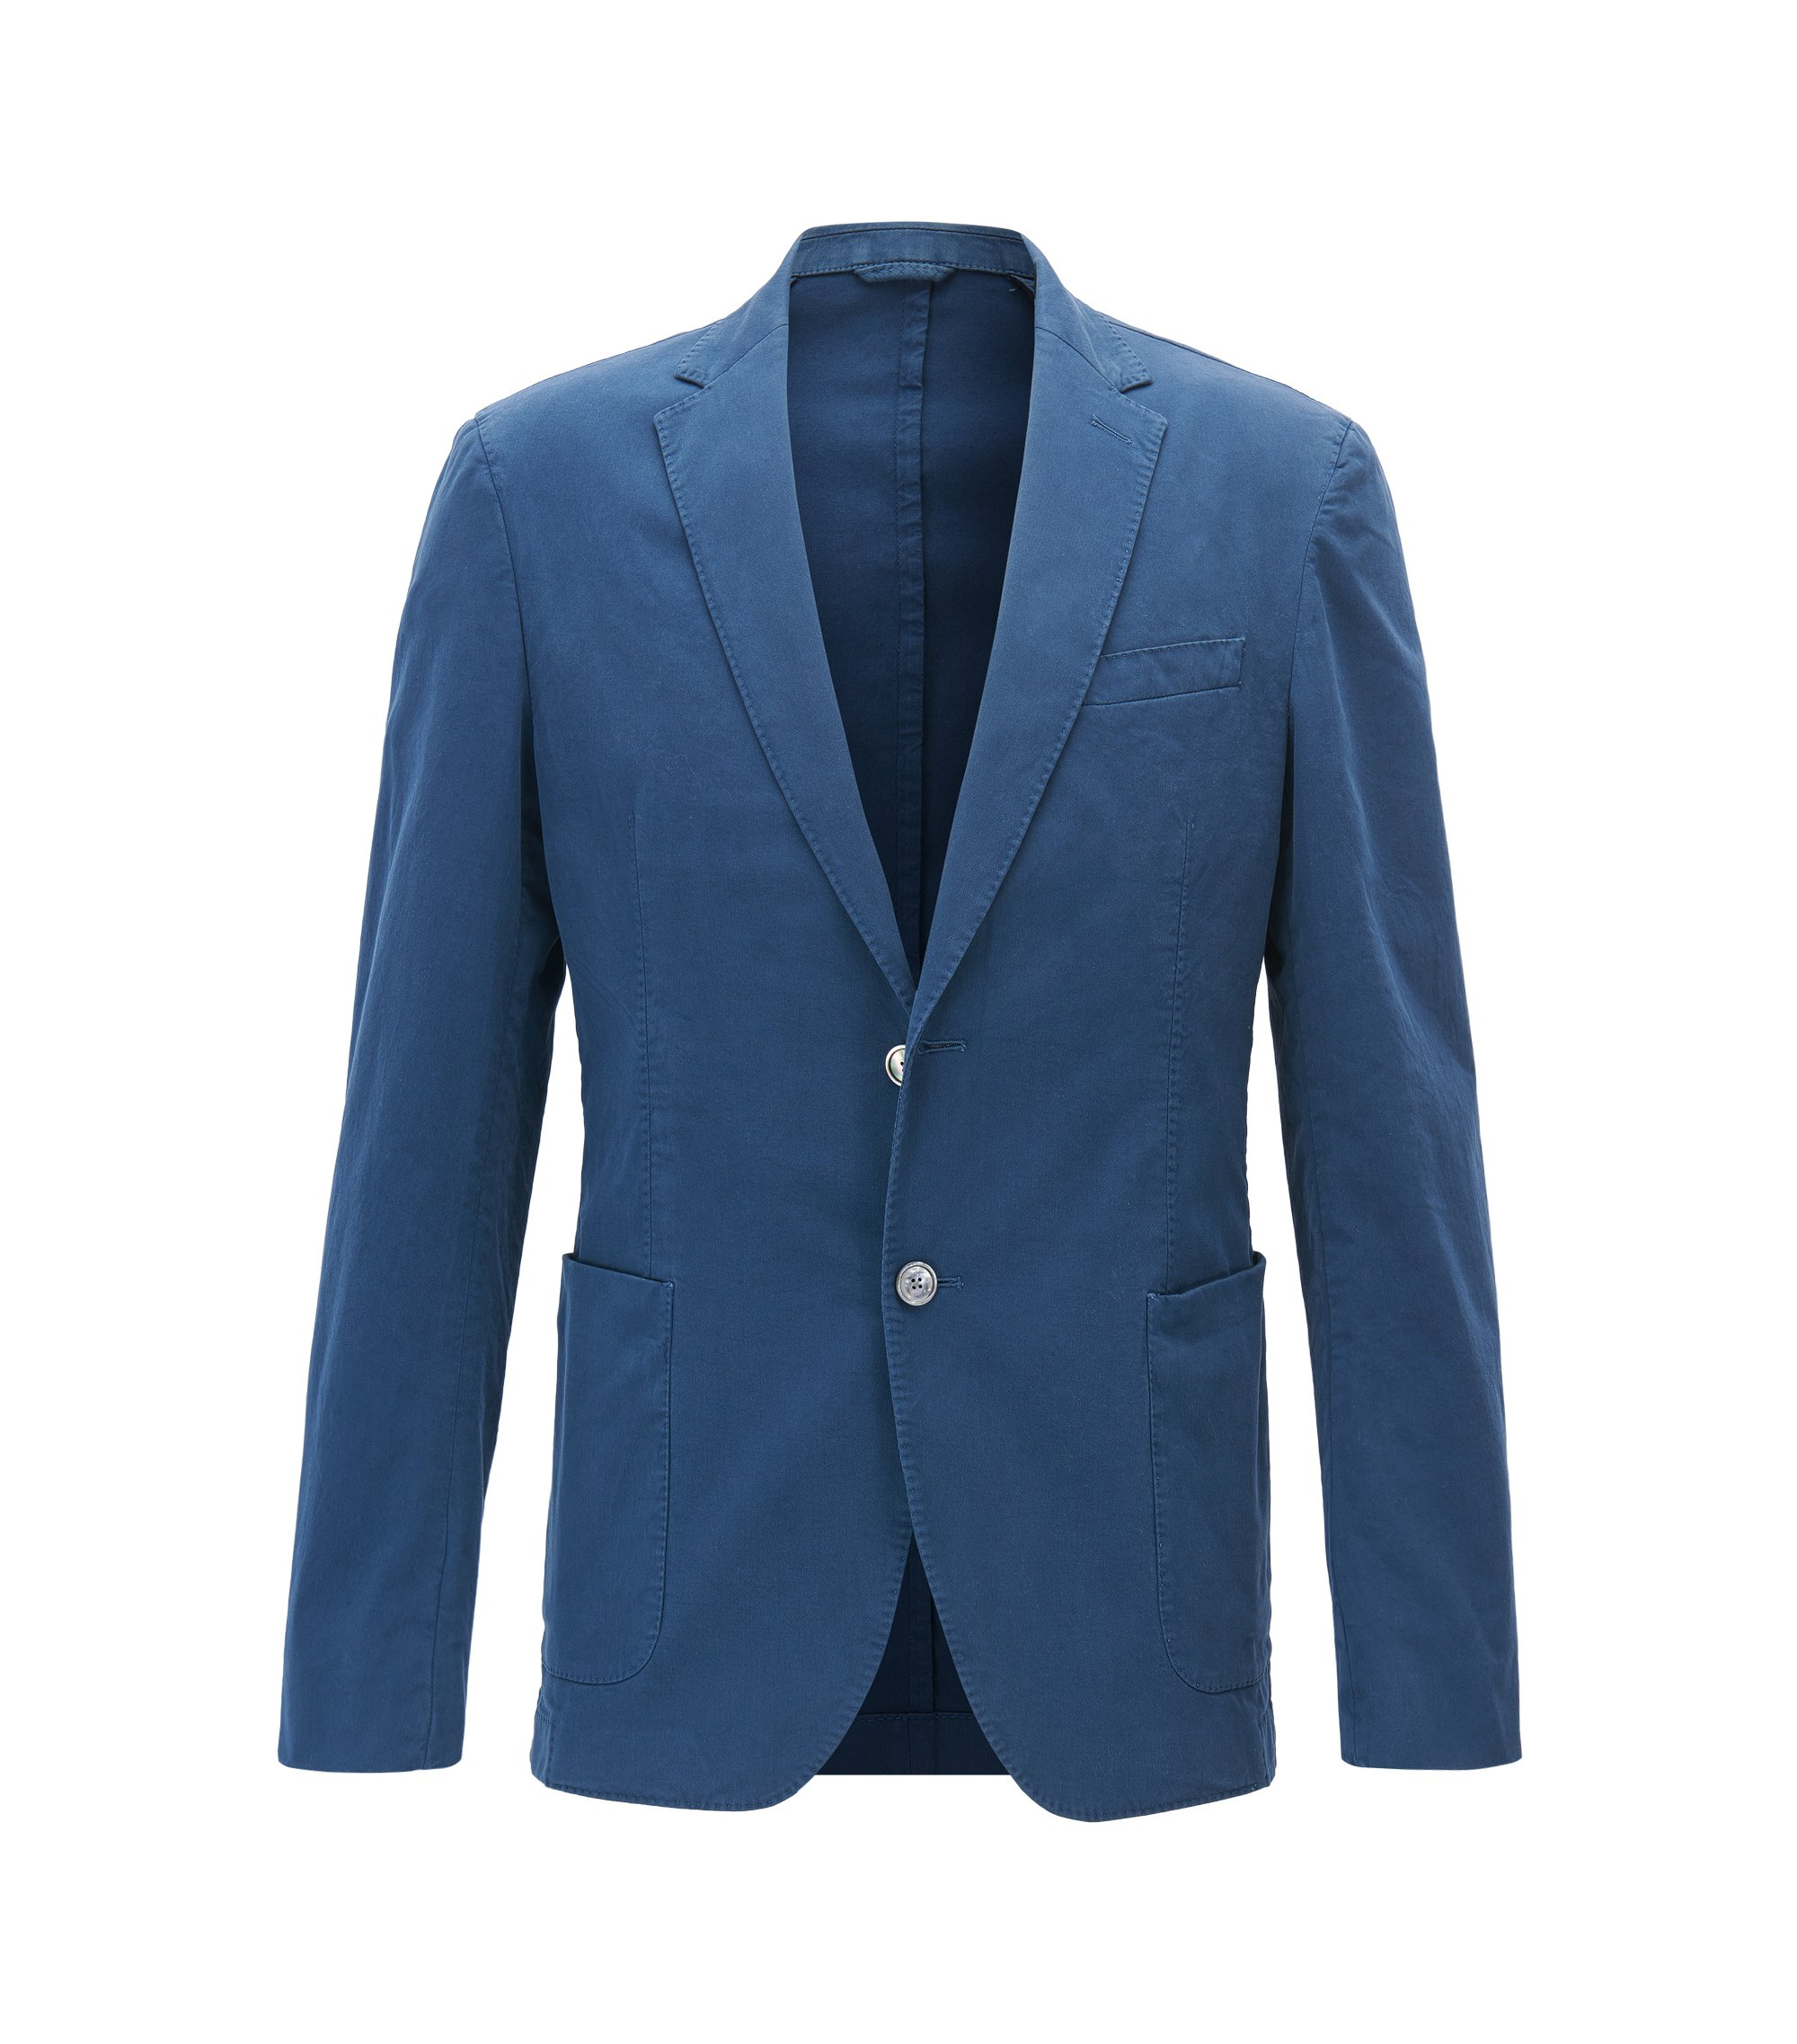 Garment-Dyed Stretch Cotton Sport Coat, Slim Fit | Hanry D, Open Blue